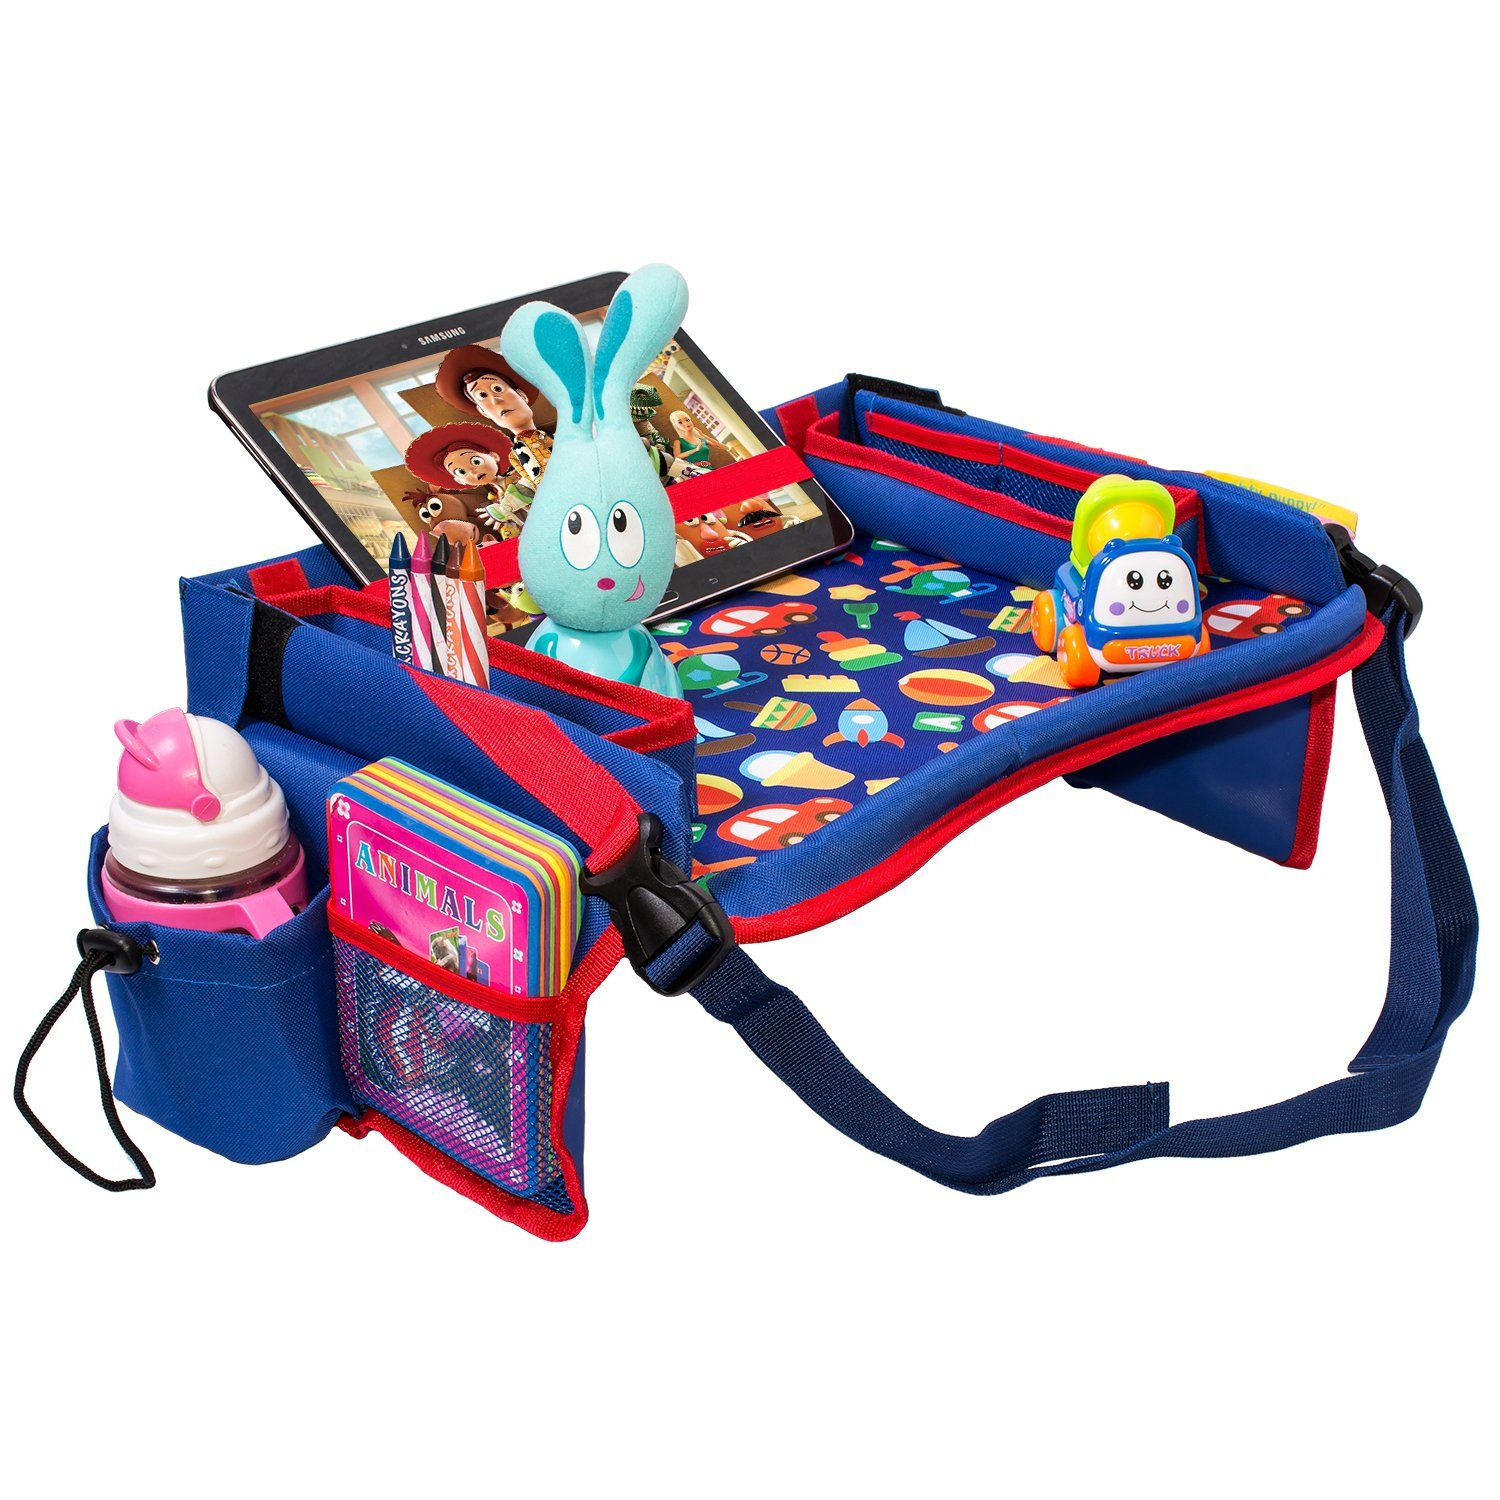 Toddler Car Seat Travel Tray by DMoose 16Inchby12Inch â